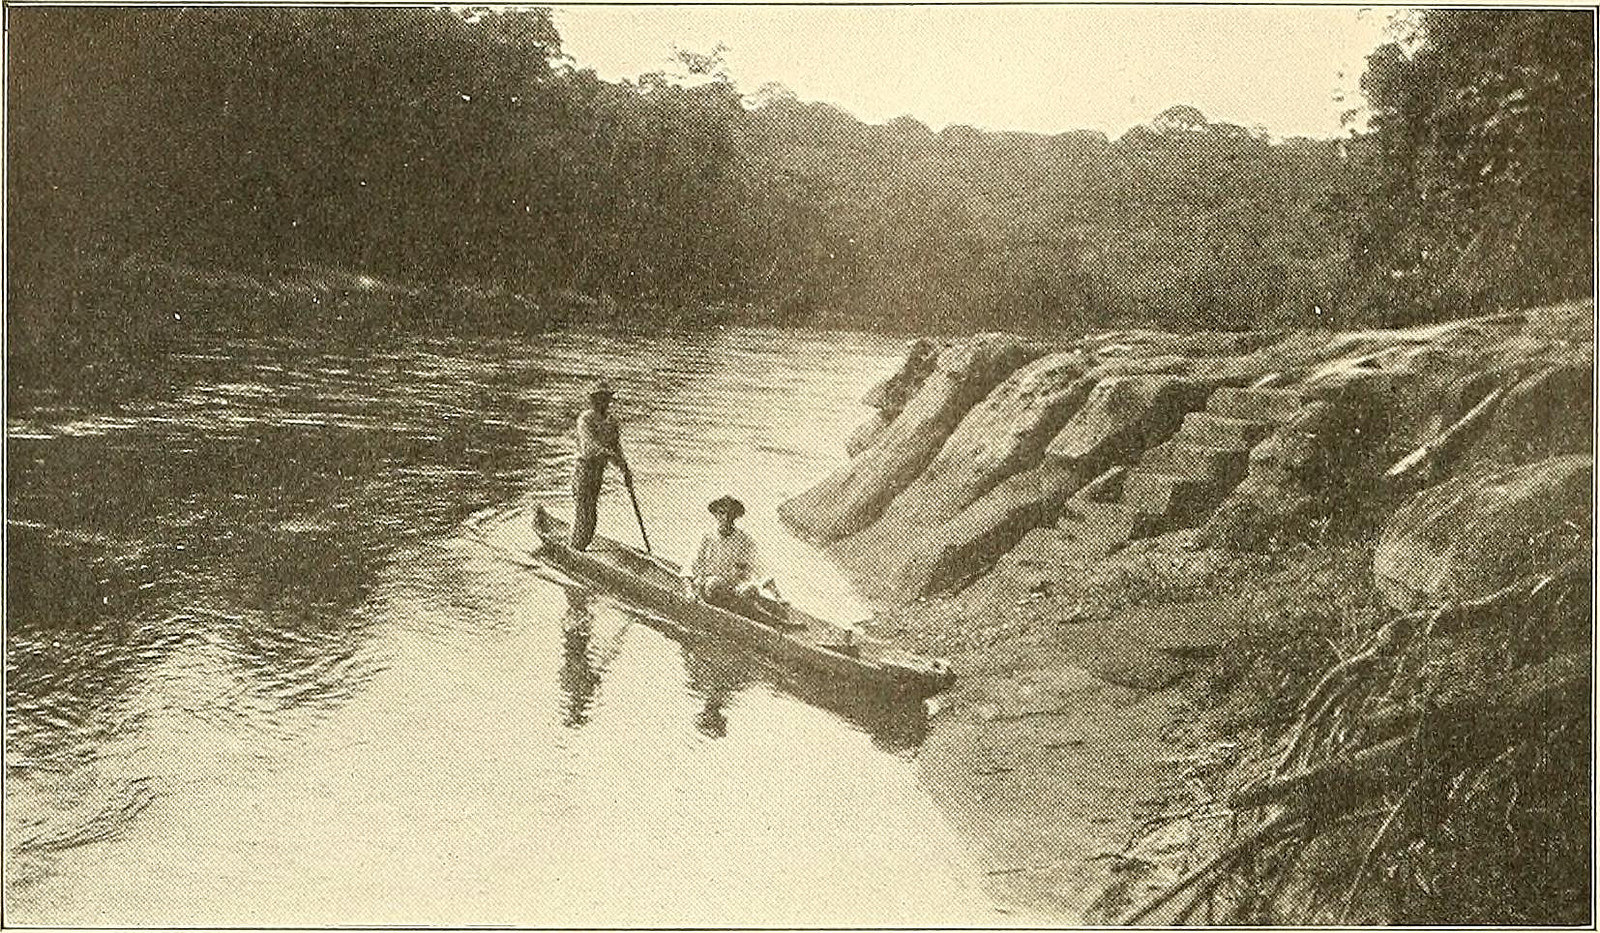 panama canal historical photo